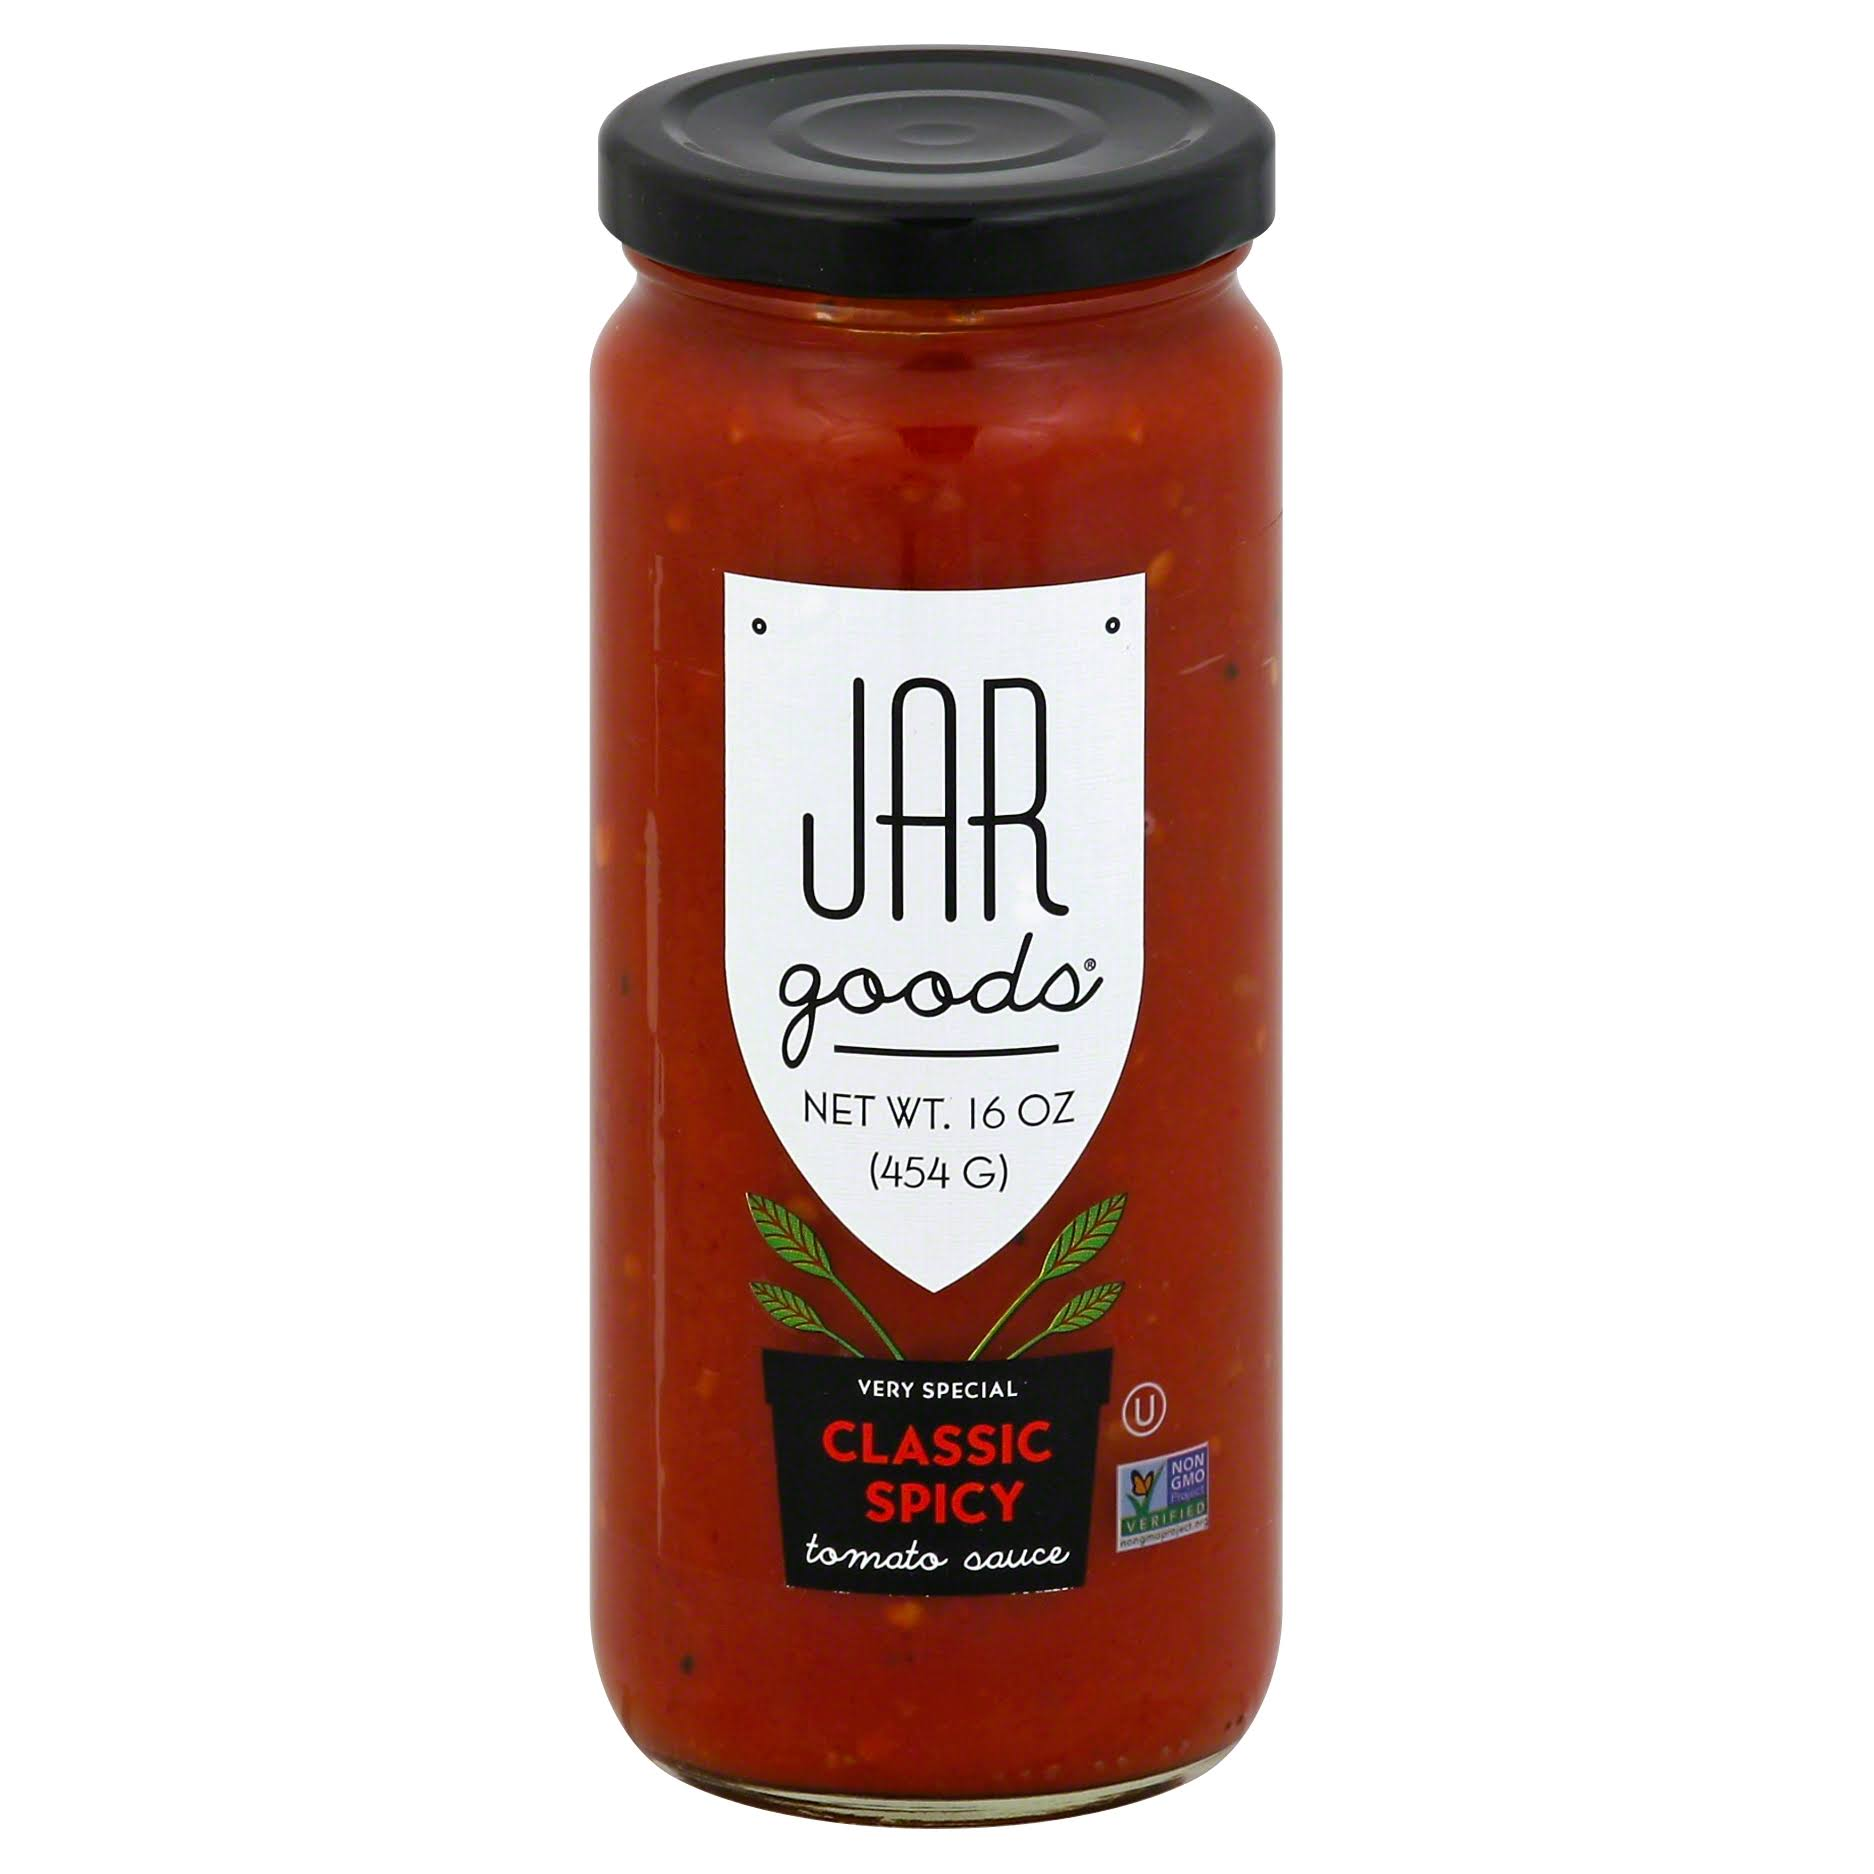 Jar Goods Tomato Sauce, Very Special, Classic Spicy - 16 oz